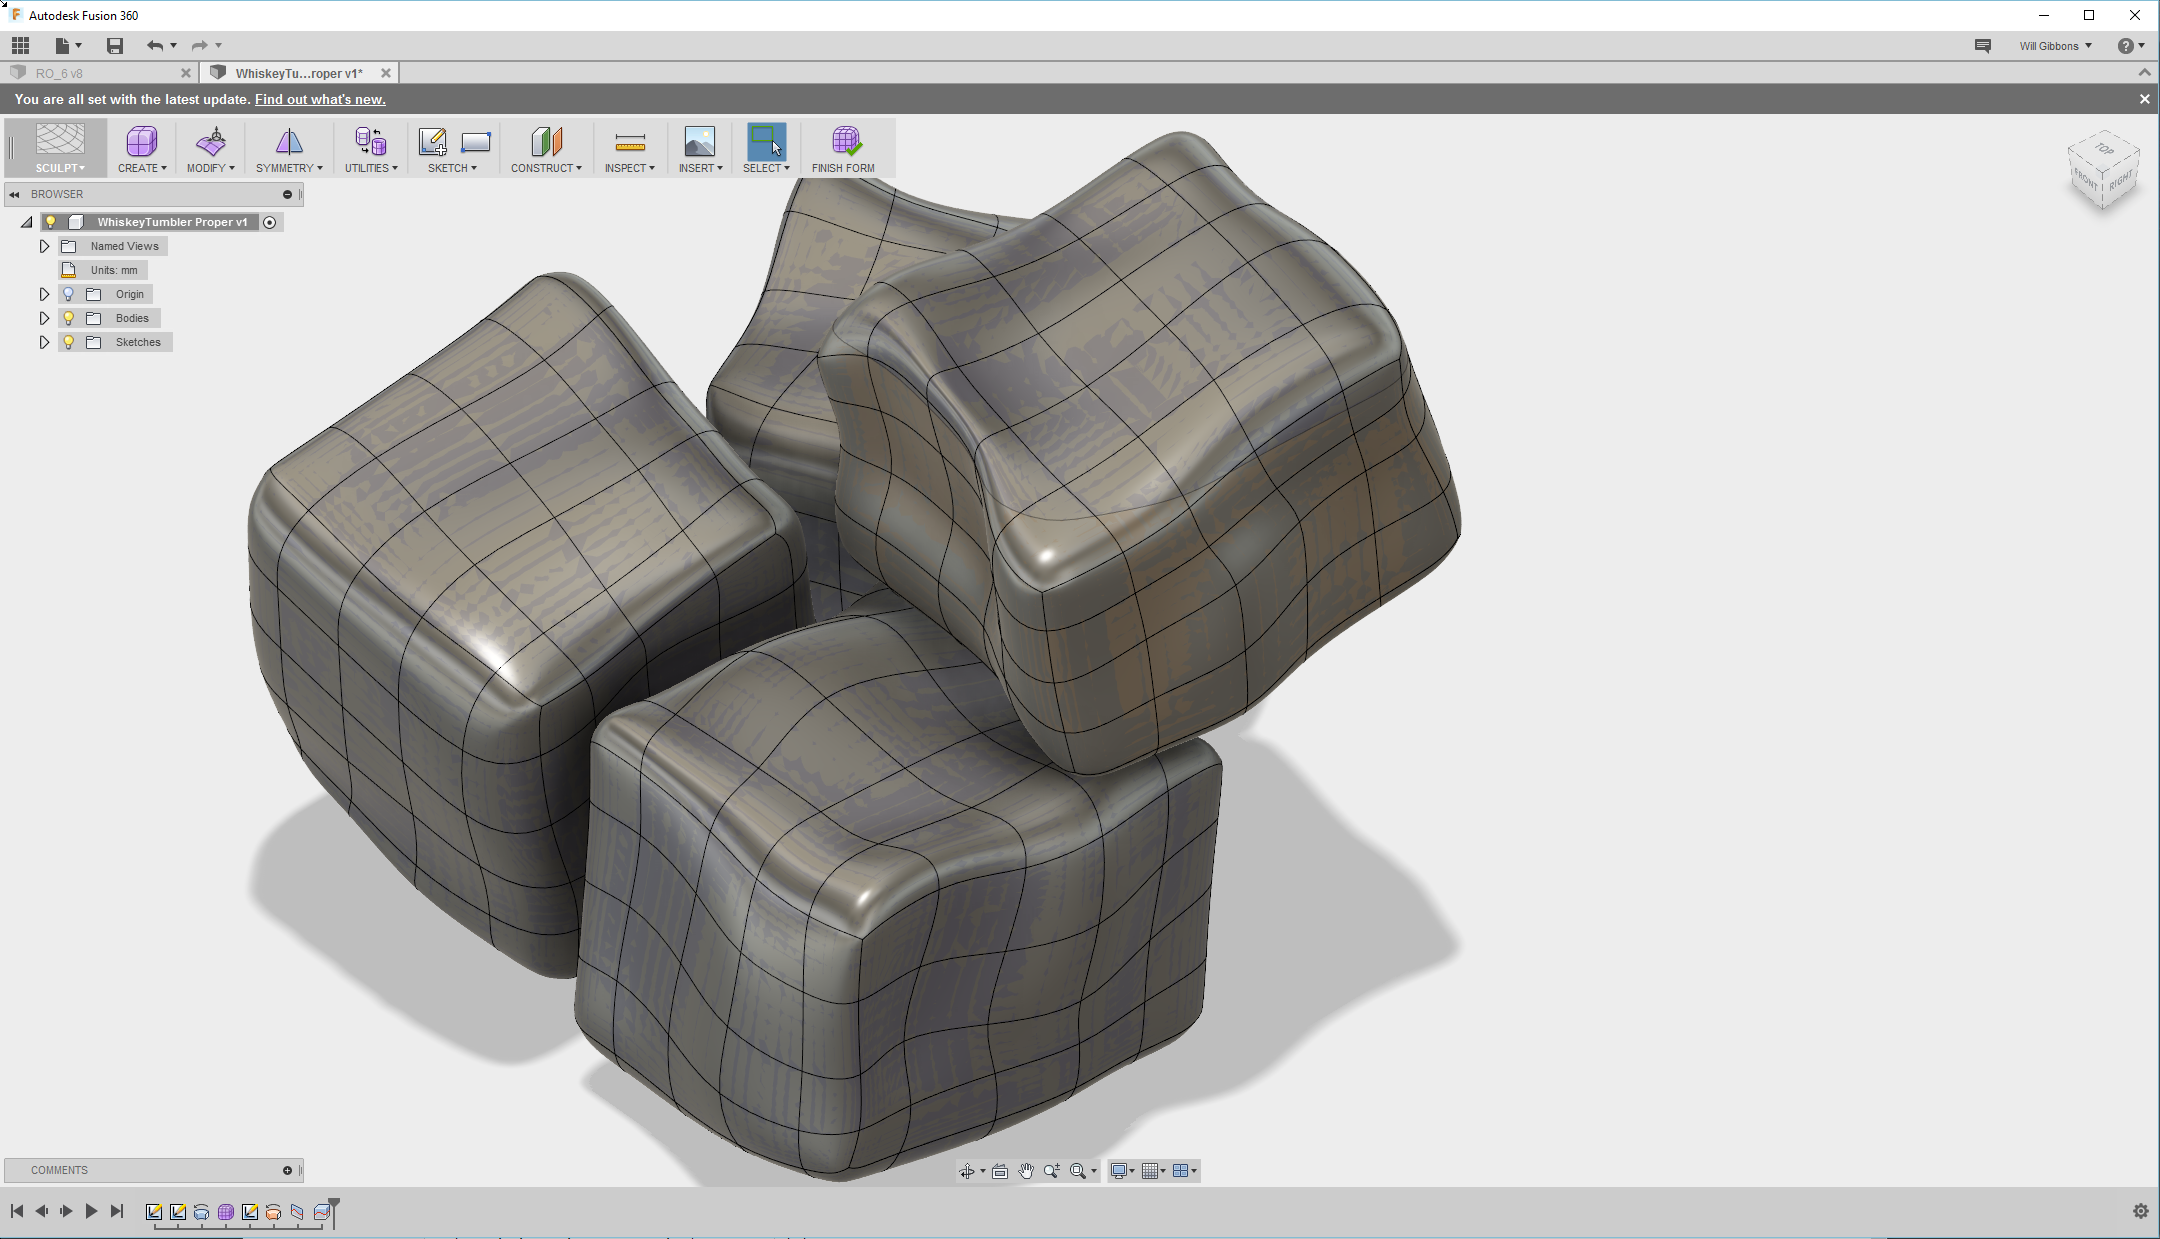 These ice cubes were quickly and easily modeled using Fusion 360's sculpt tools.